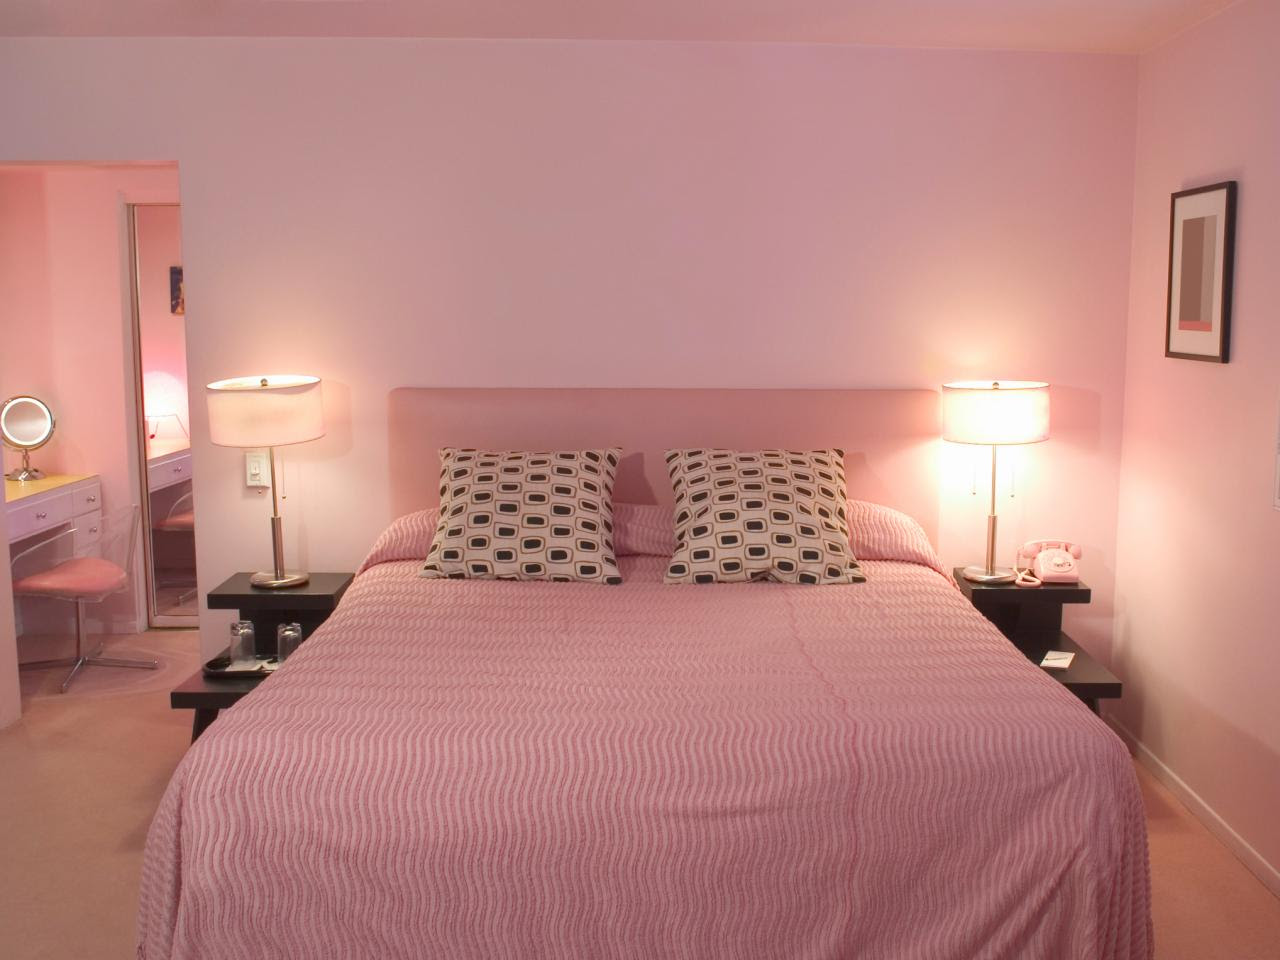 Chic Pink Bedroom Design Ideas for Fashionable Girl ...